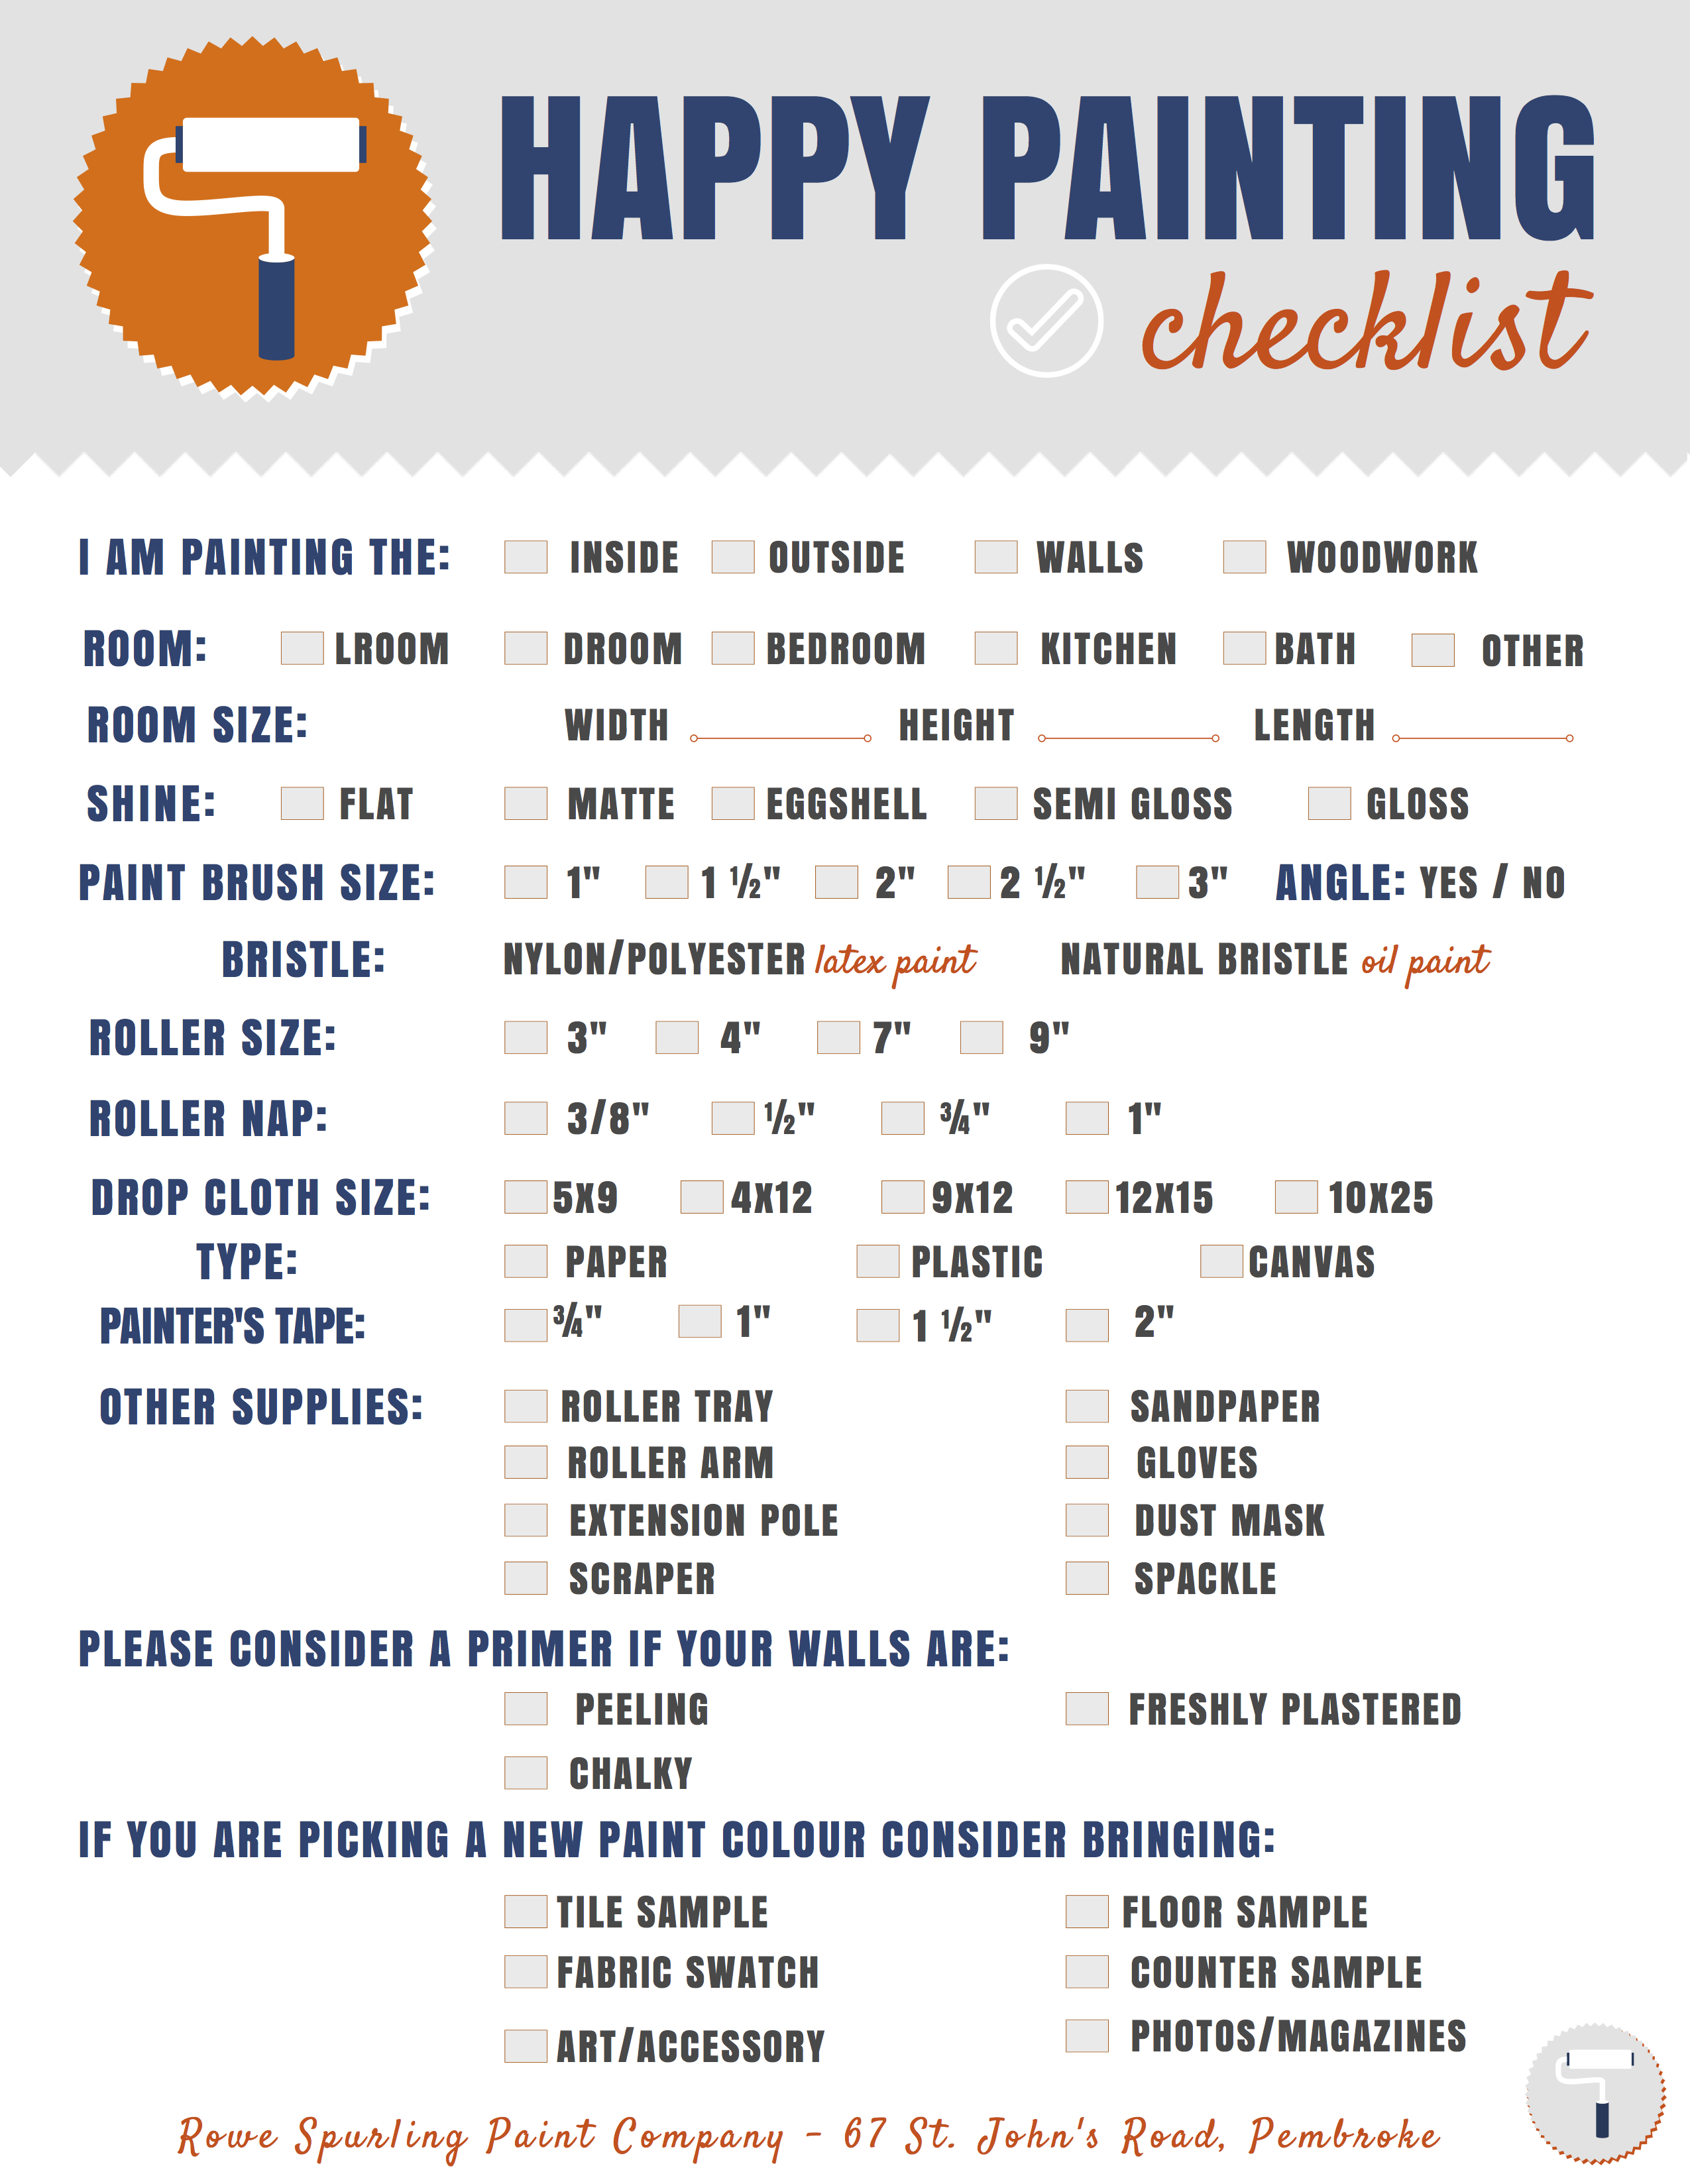 PAINTING CHECKLIST Be Prepared ROWE SPURLING PAINT COMPANY